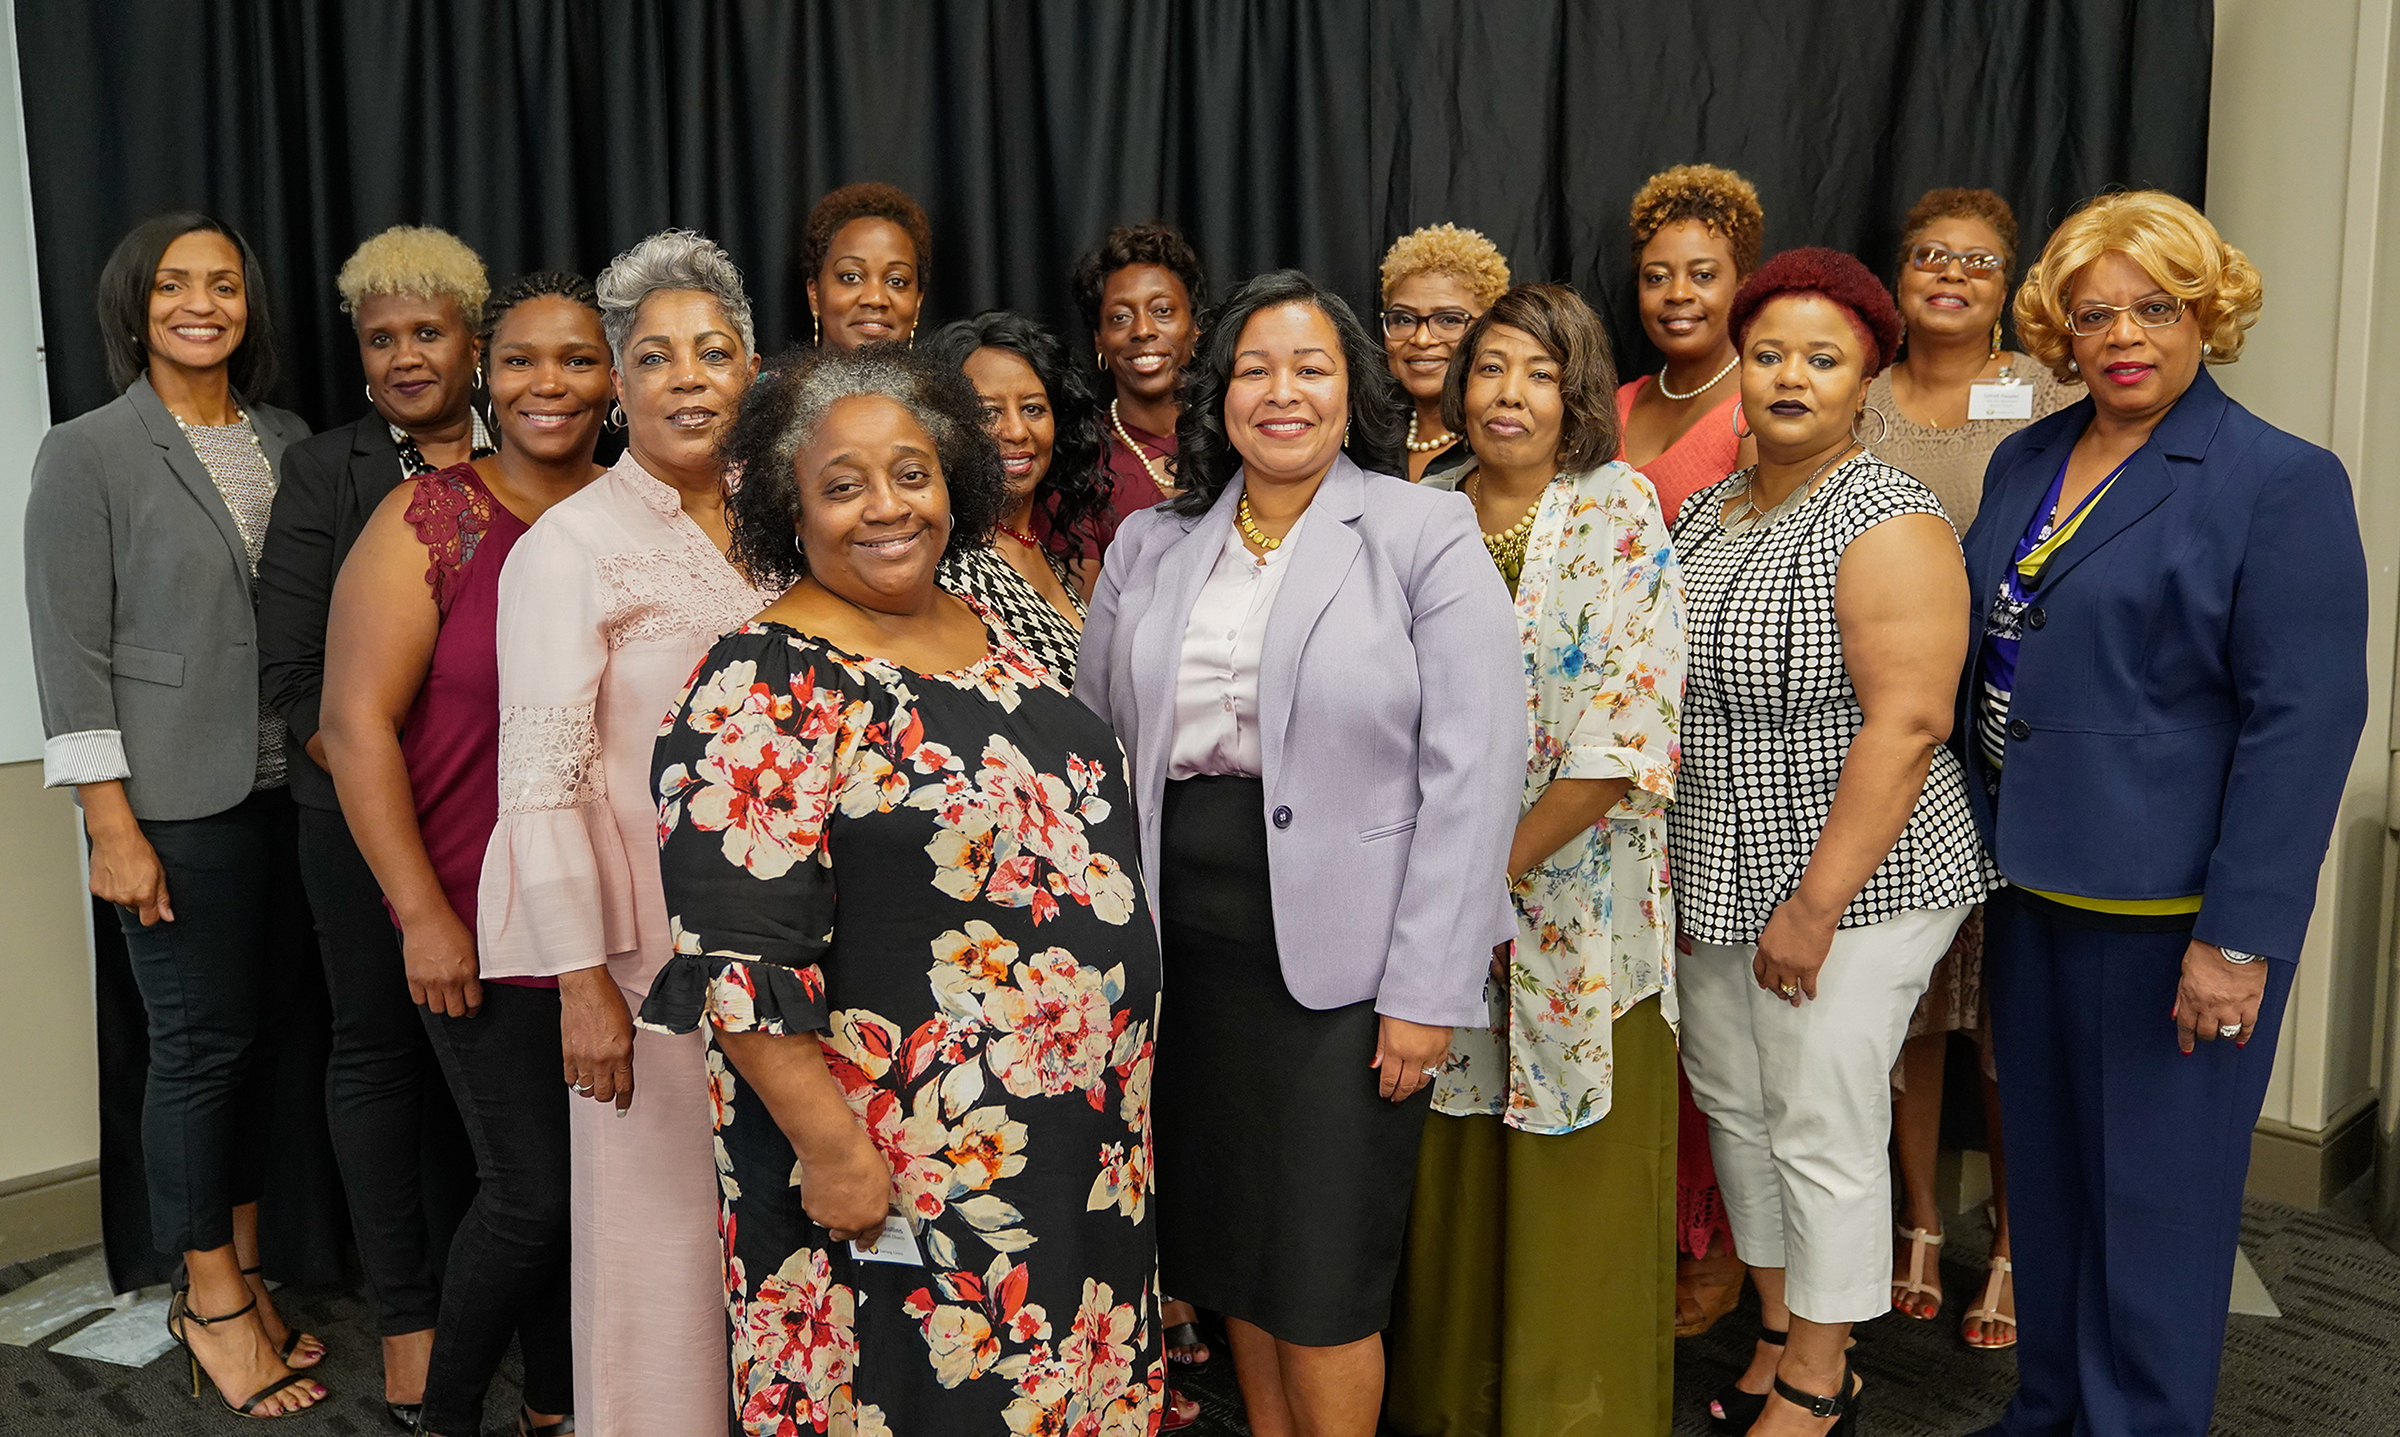 Saving Lives program director Dr. Nicole B. Prewitt, center, poses with Leadership Academy participants.